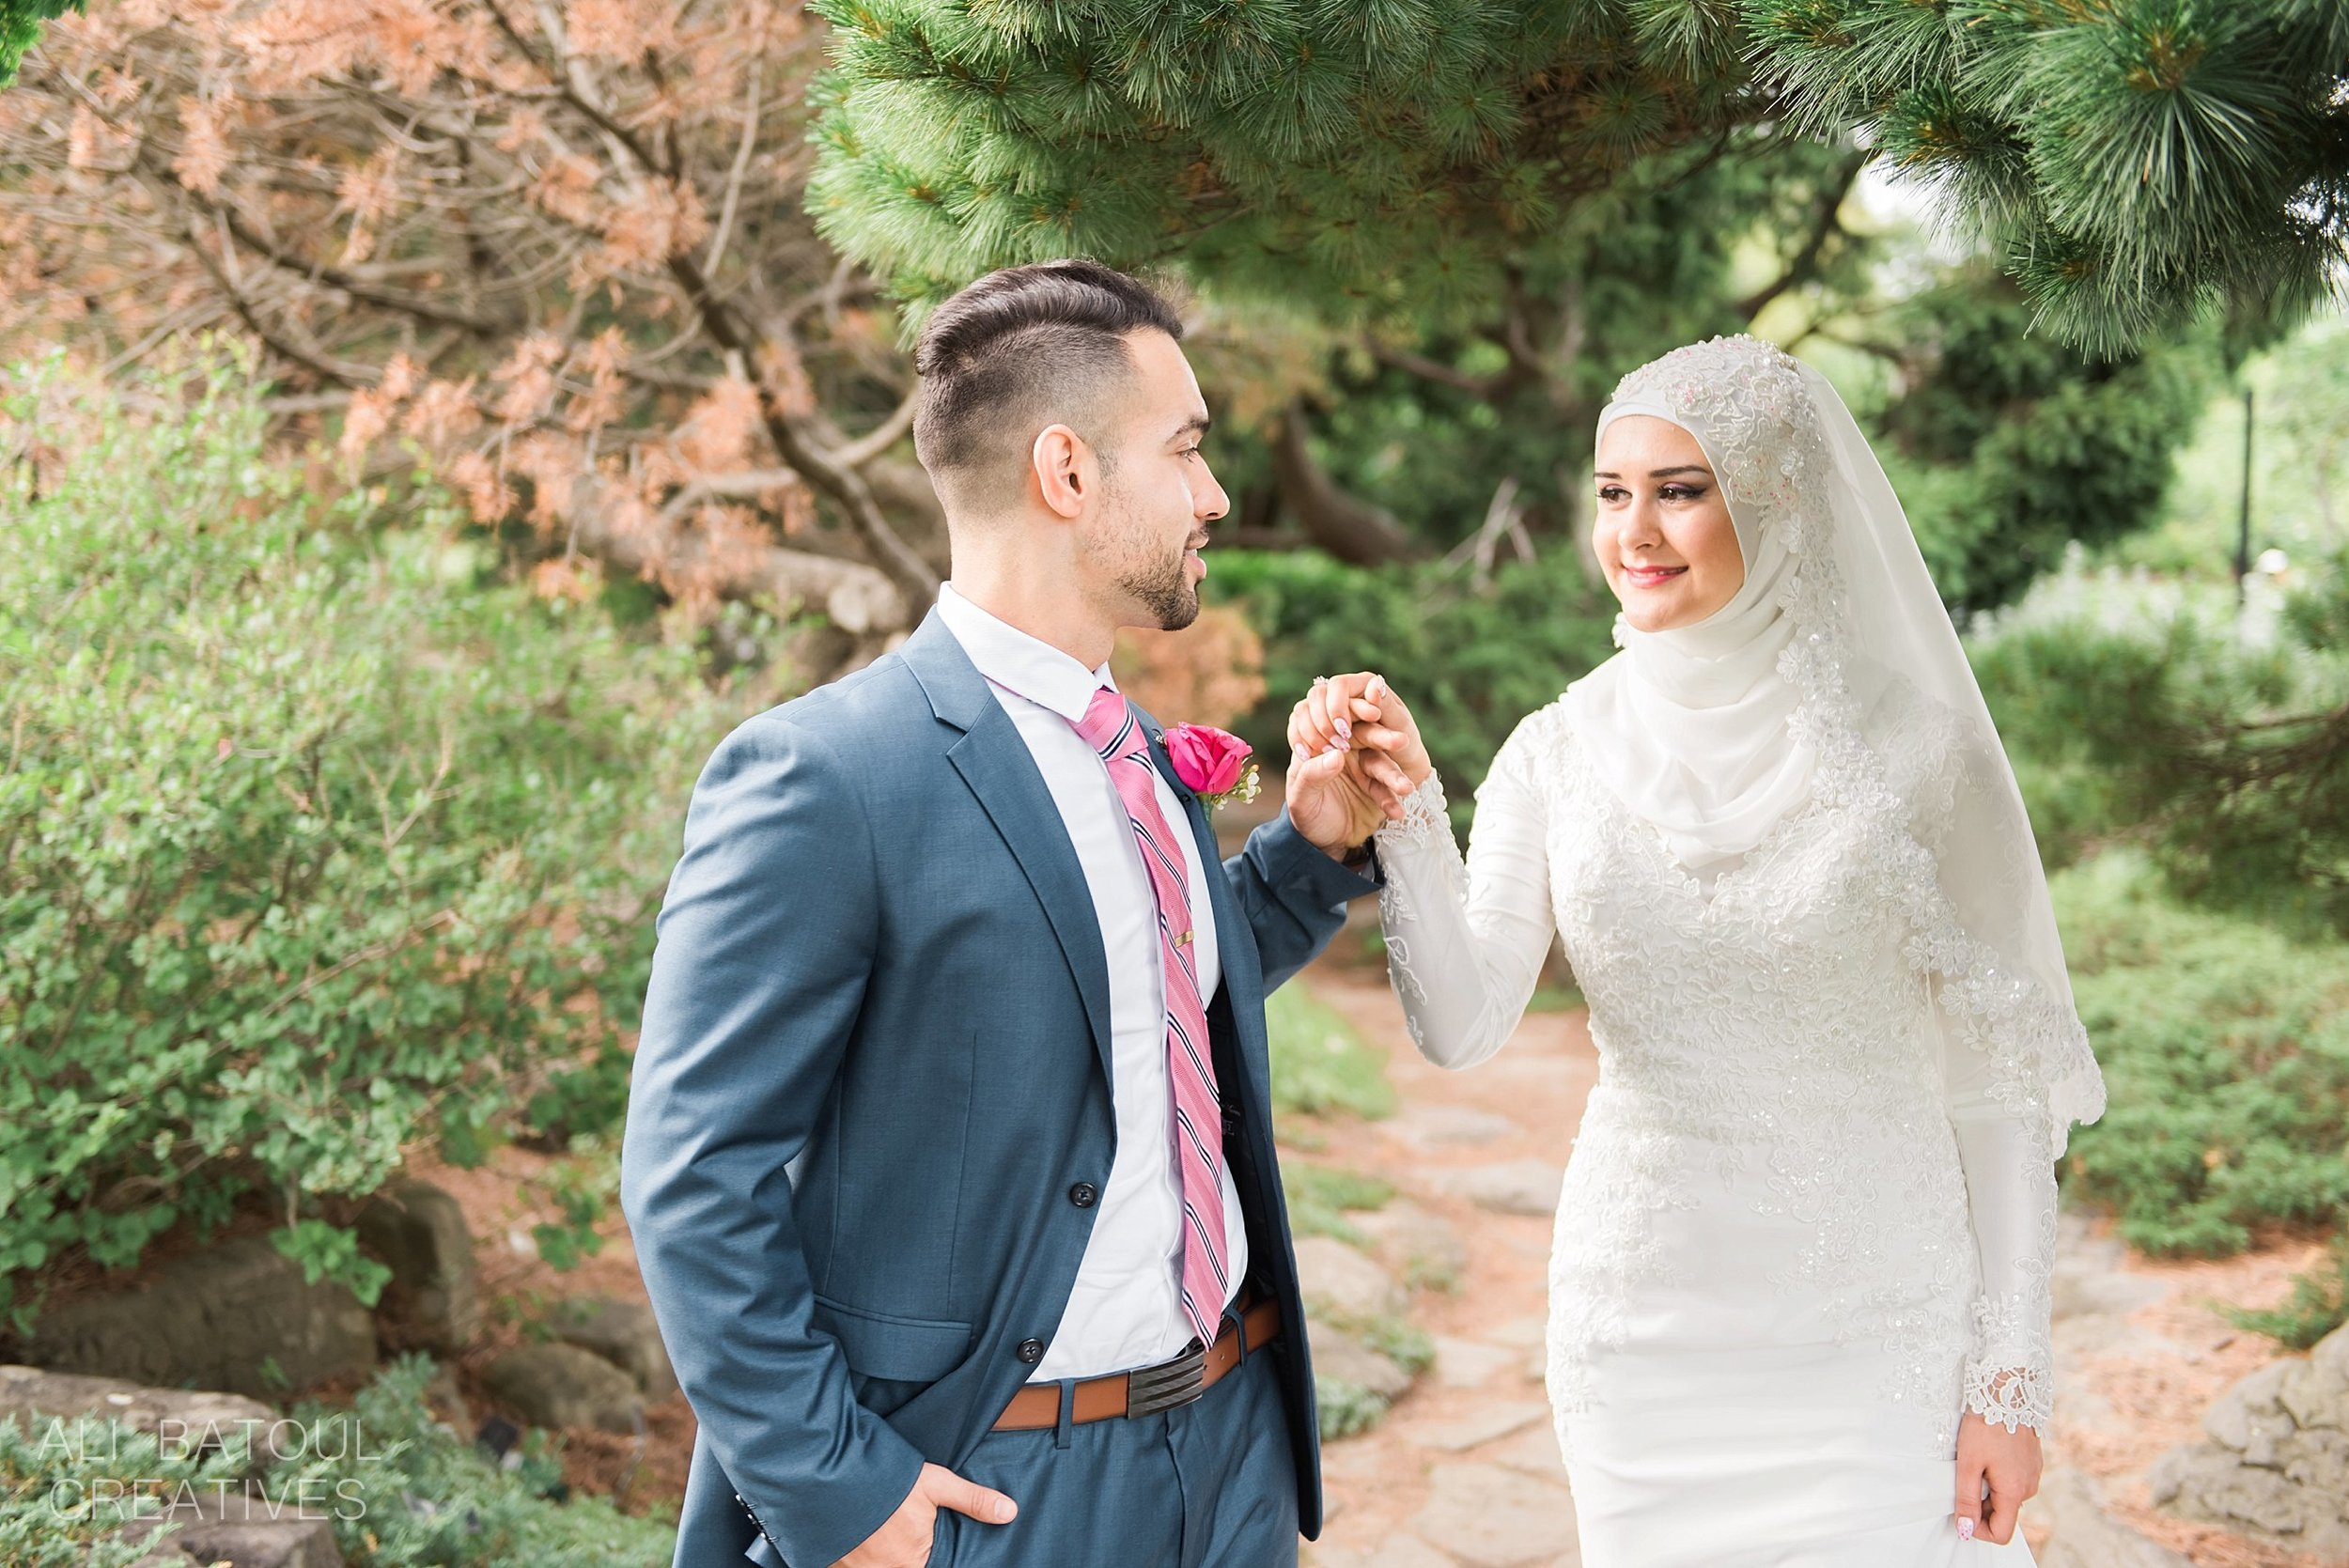 Hanan + Said - Ali Batoul Creatives Fine Art Wedding Photography_0285.jpg